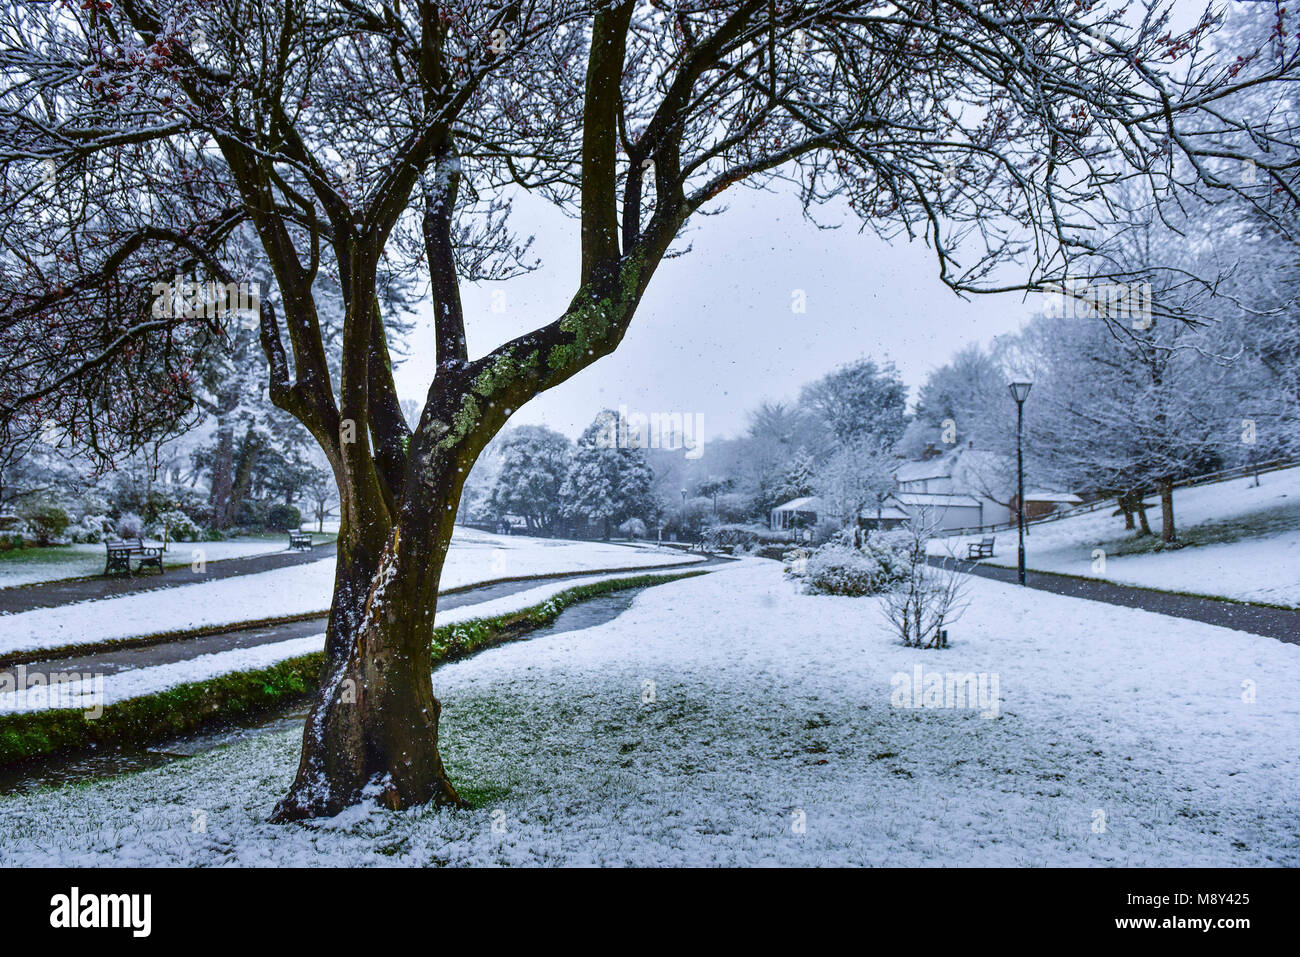 Heavy snowfall in Trenance Gardens Newquay Cornwall. - Stock Image